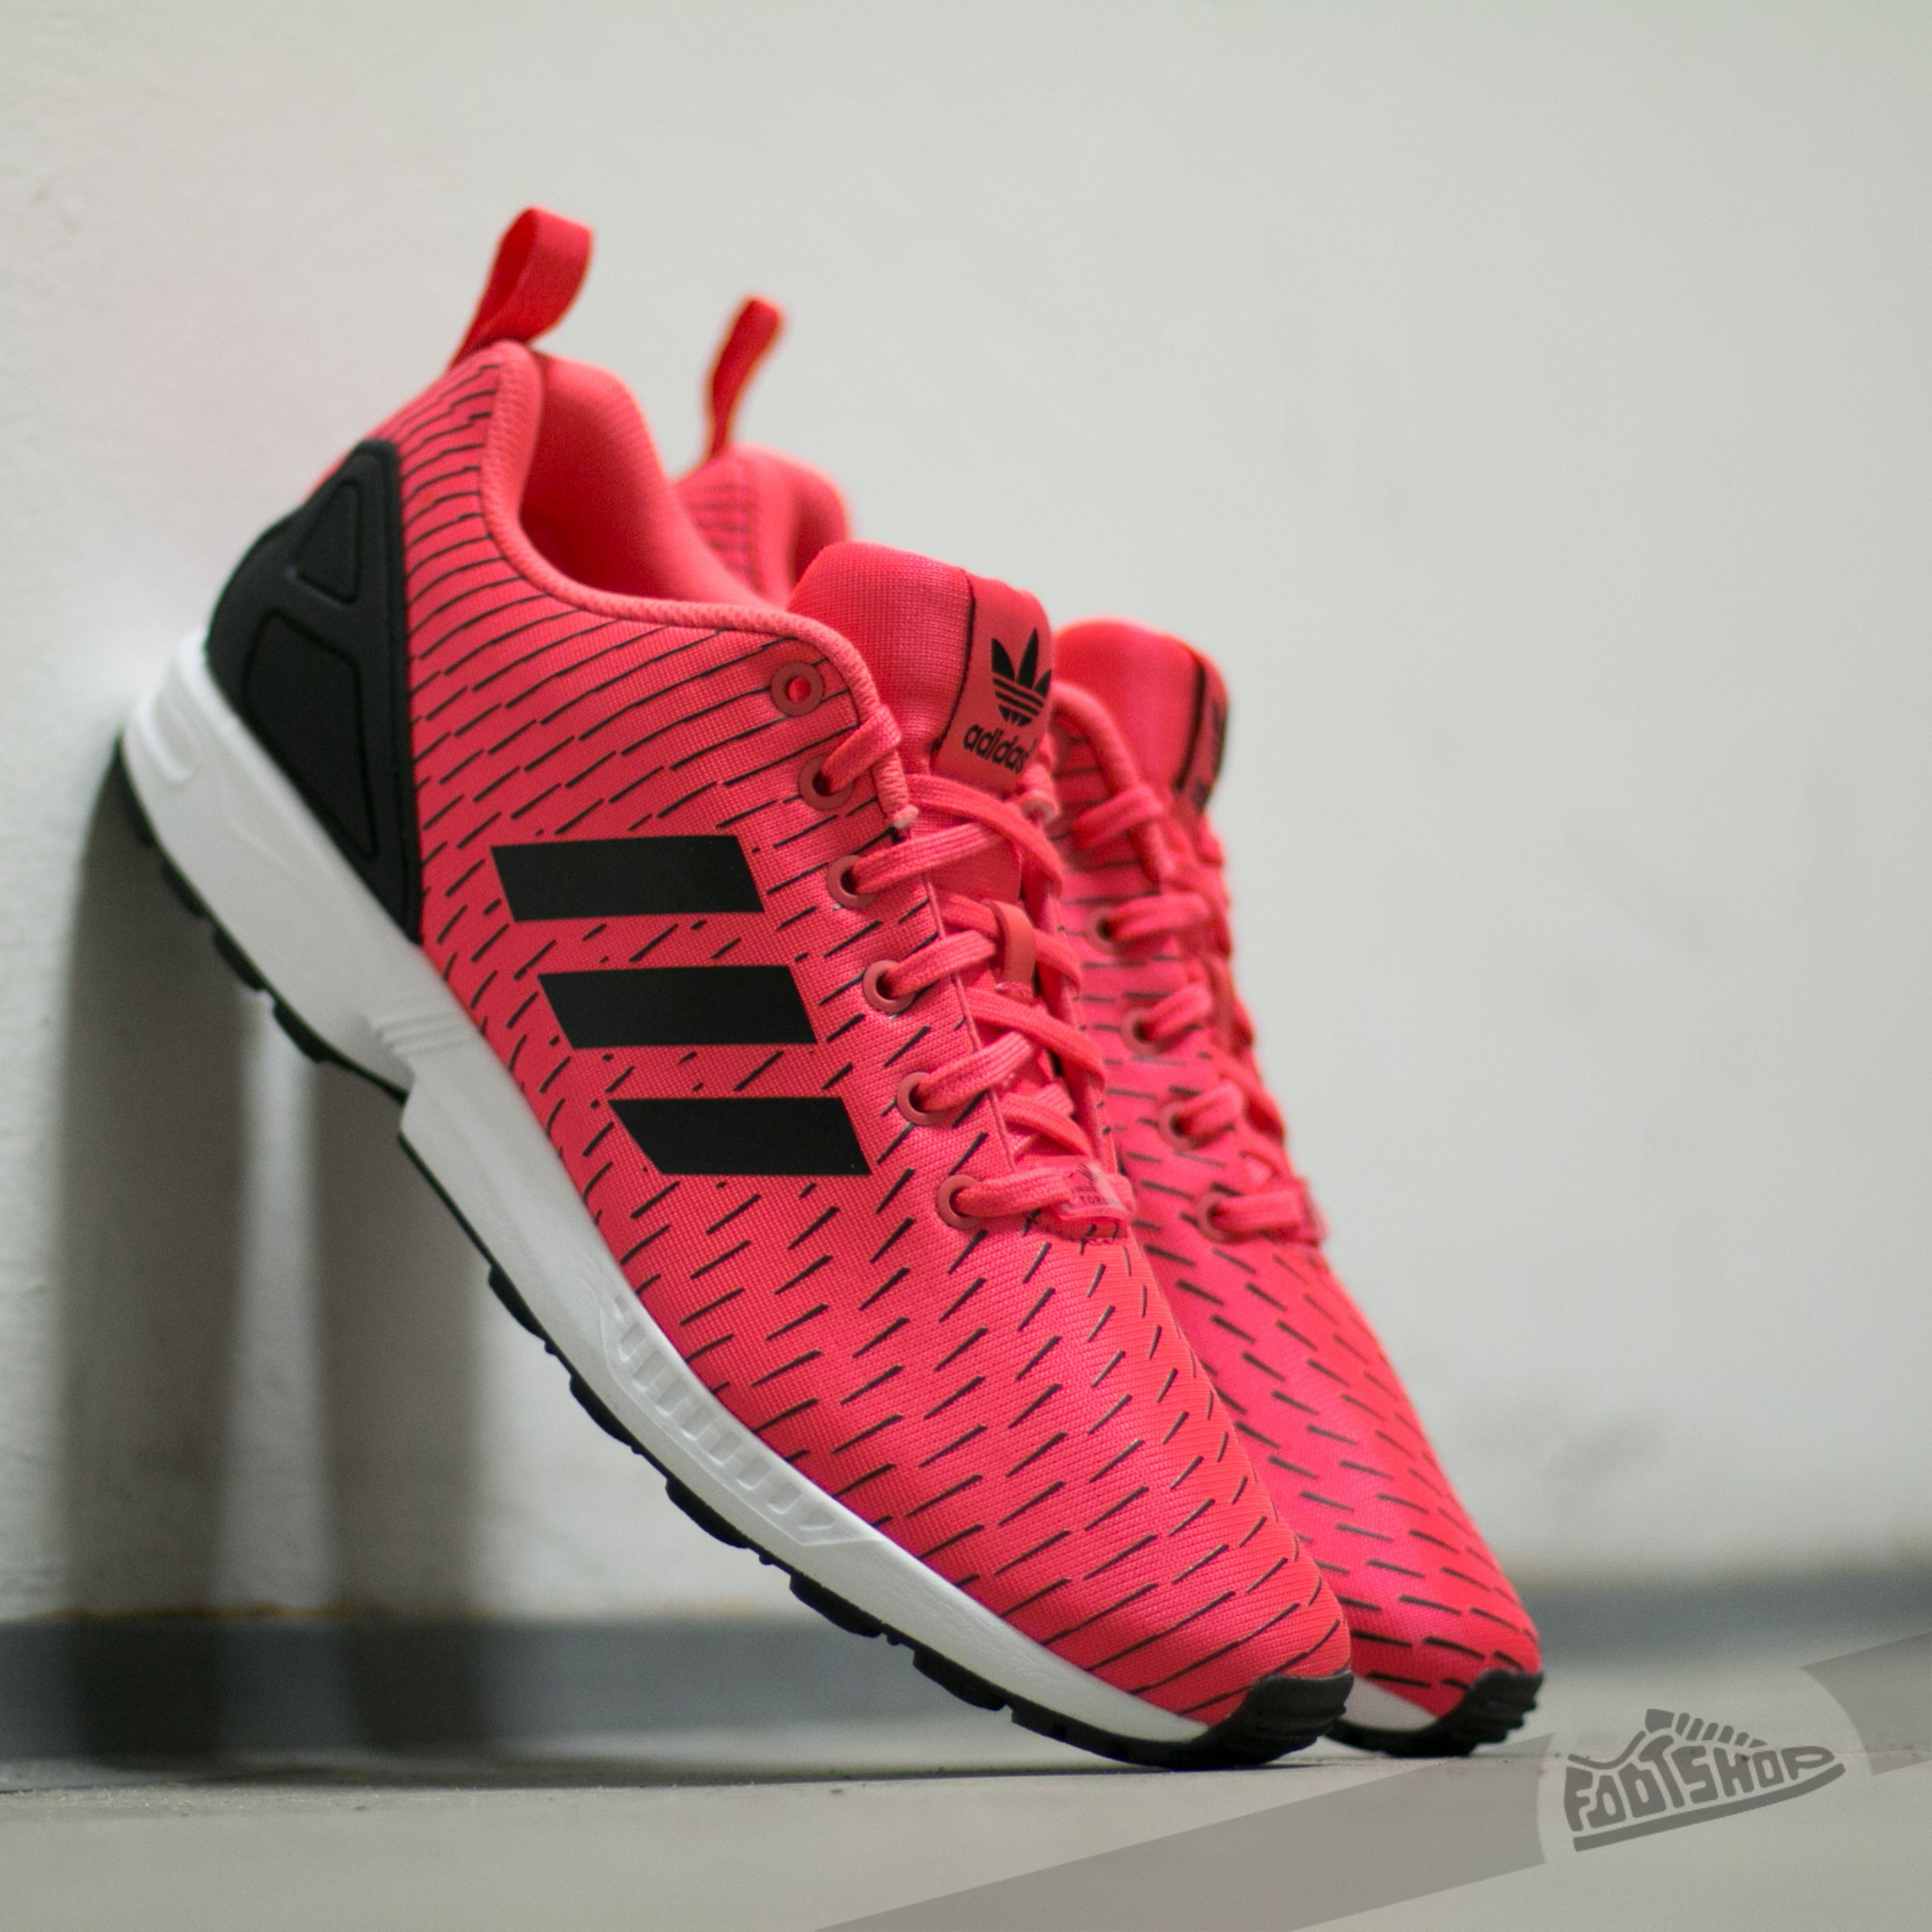 brand new 20f73 cdf6e ... clearance adidas zx flux shock red s16 shock red s16 core black a76af  d9769